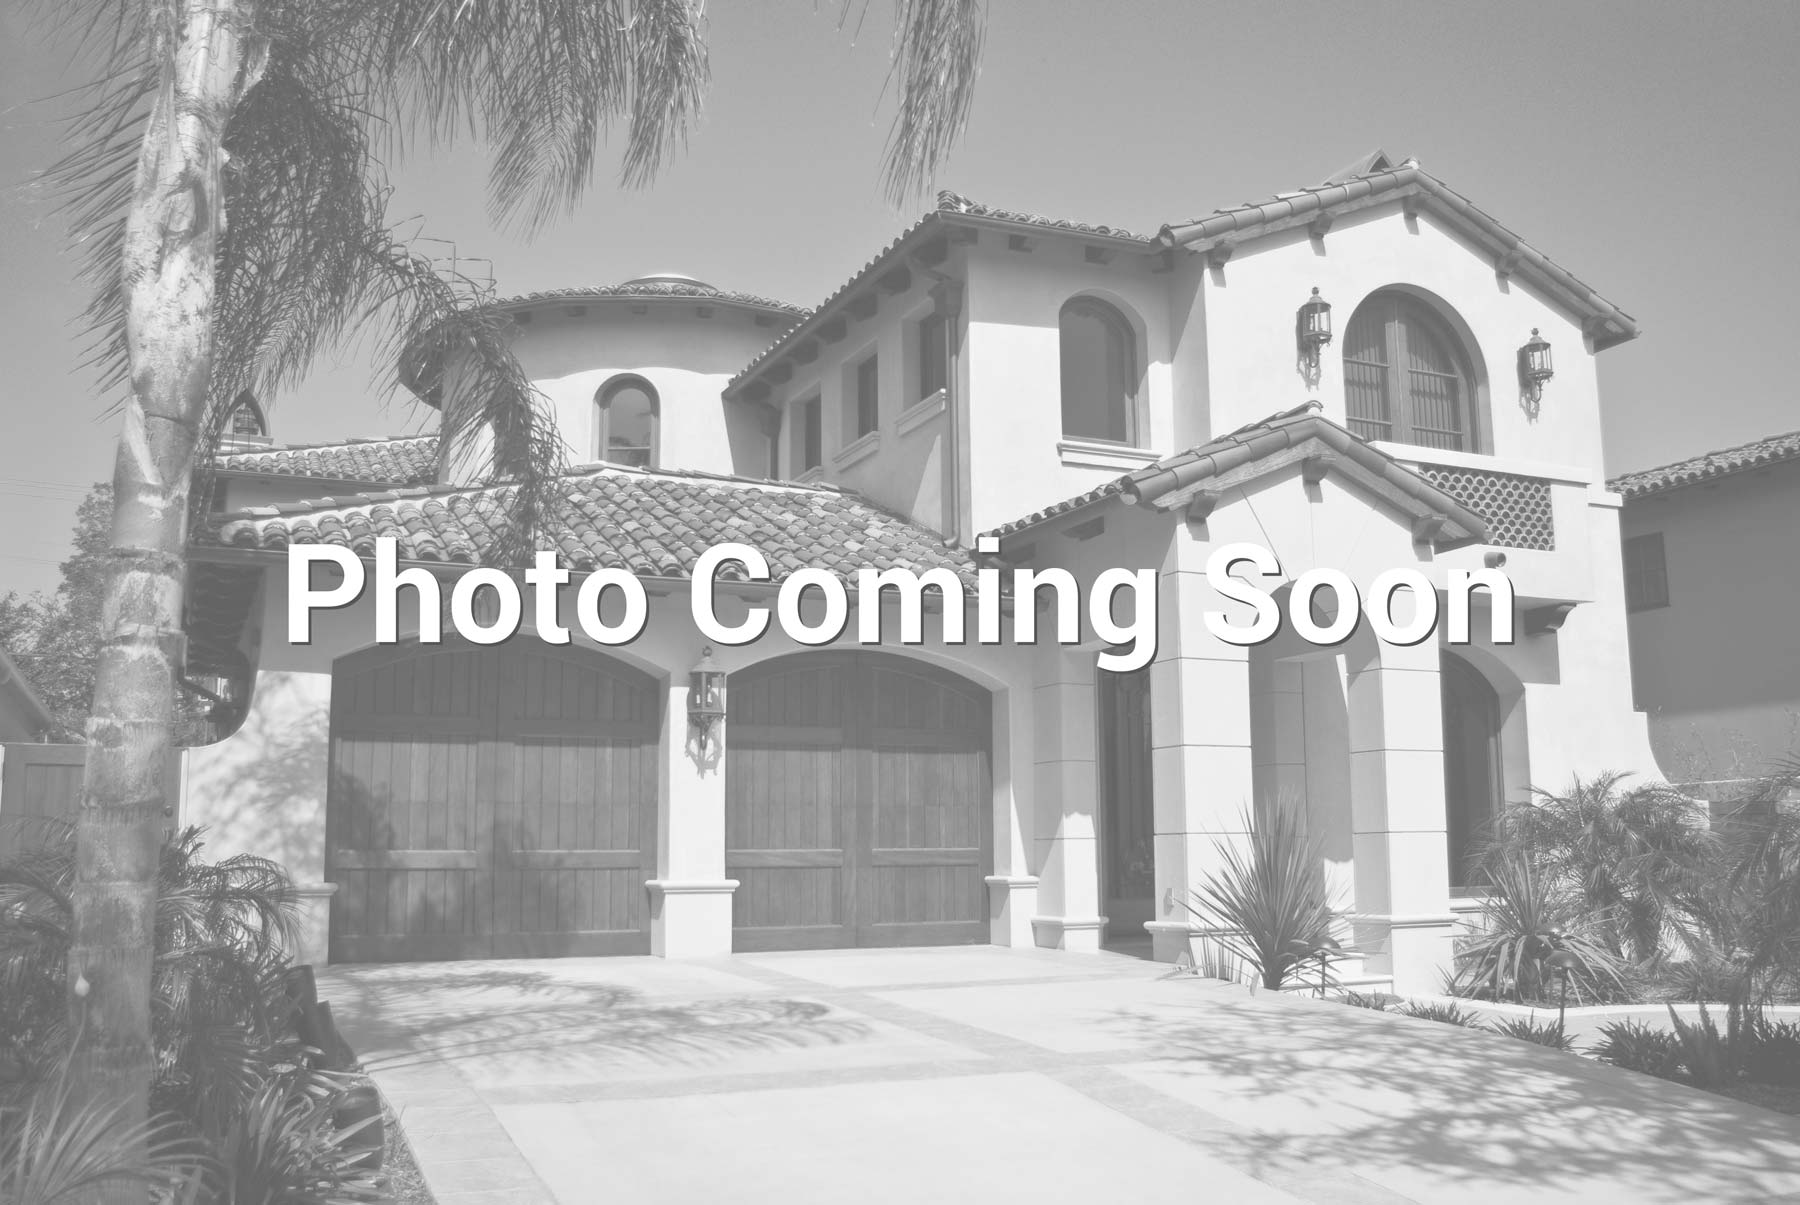 $714,000 - 5Br/5Ba - Home for Sale in Desert Ridge Superblock 11 Parcel 5, Phoenix